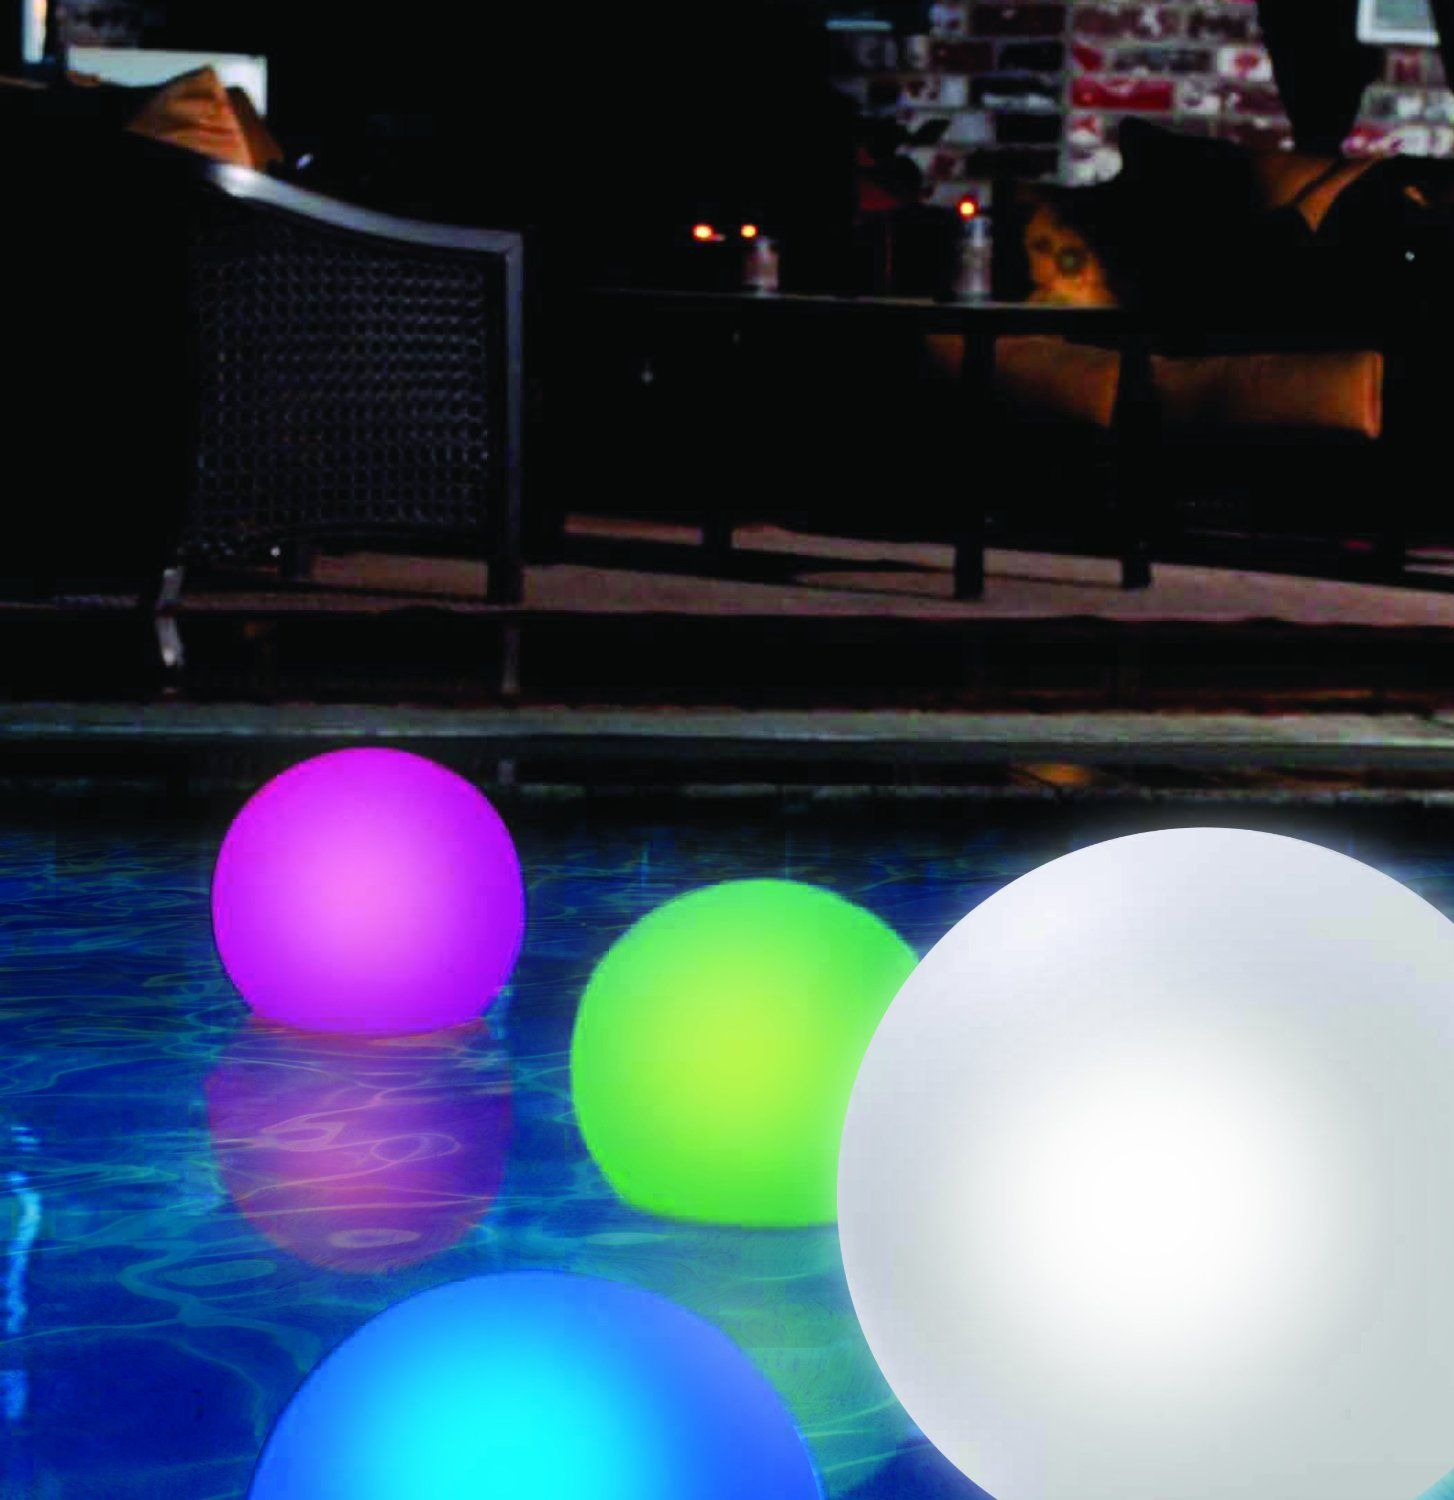 Good times floating globe with color changing